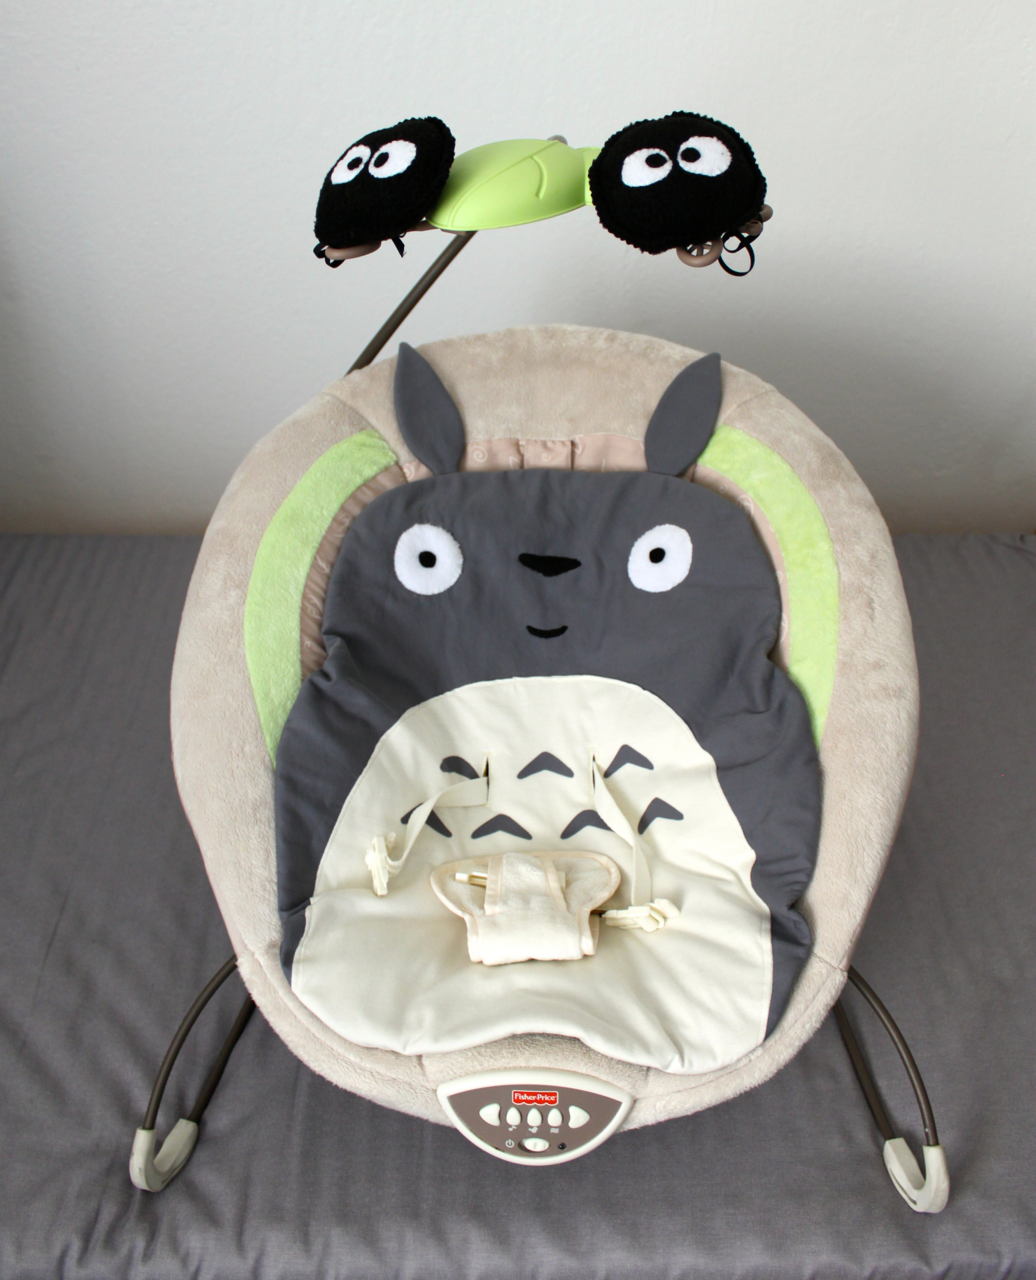 Cation Designs The Geekiest Baby TotoroThemed Bouncer